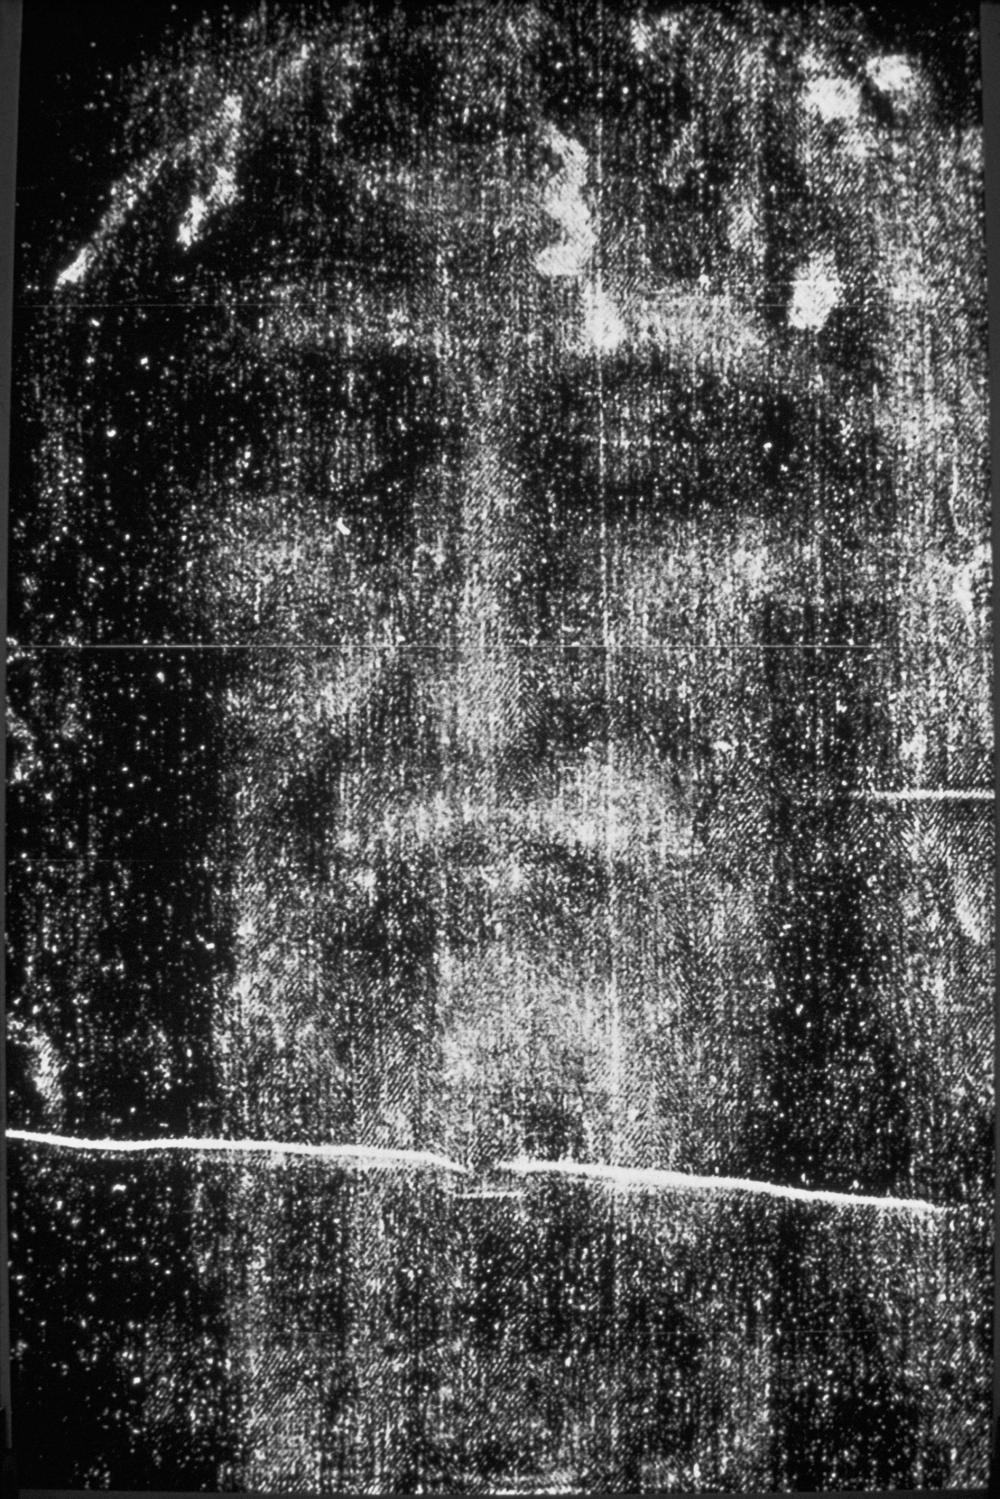 Shroud of Turin exhibition-Pro Cathedral in Dublin - Catholicireland